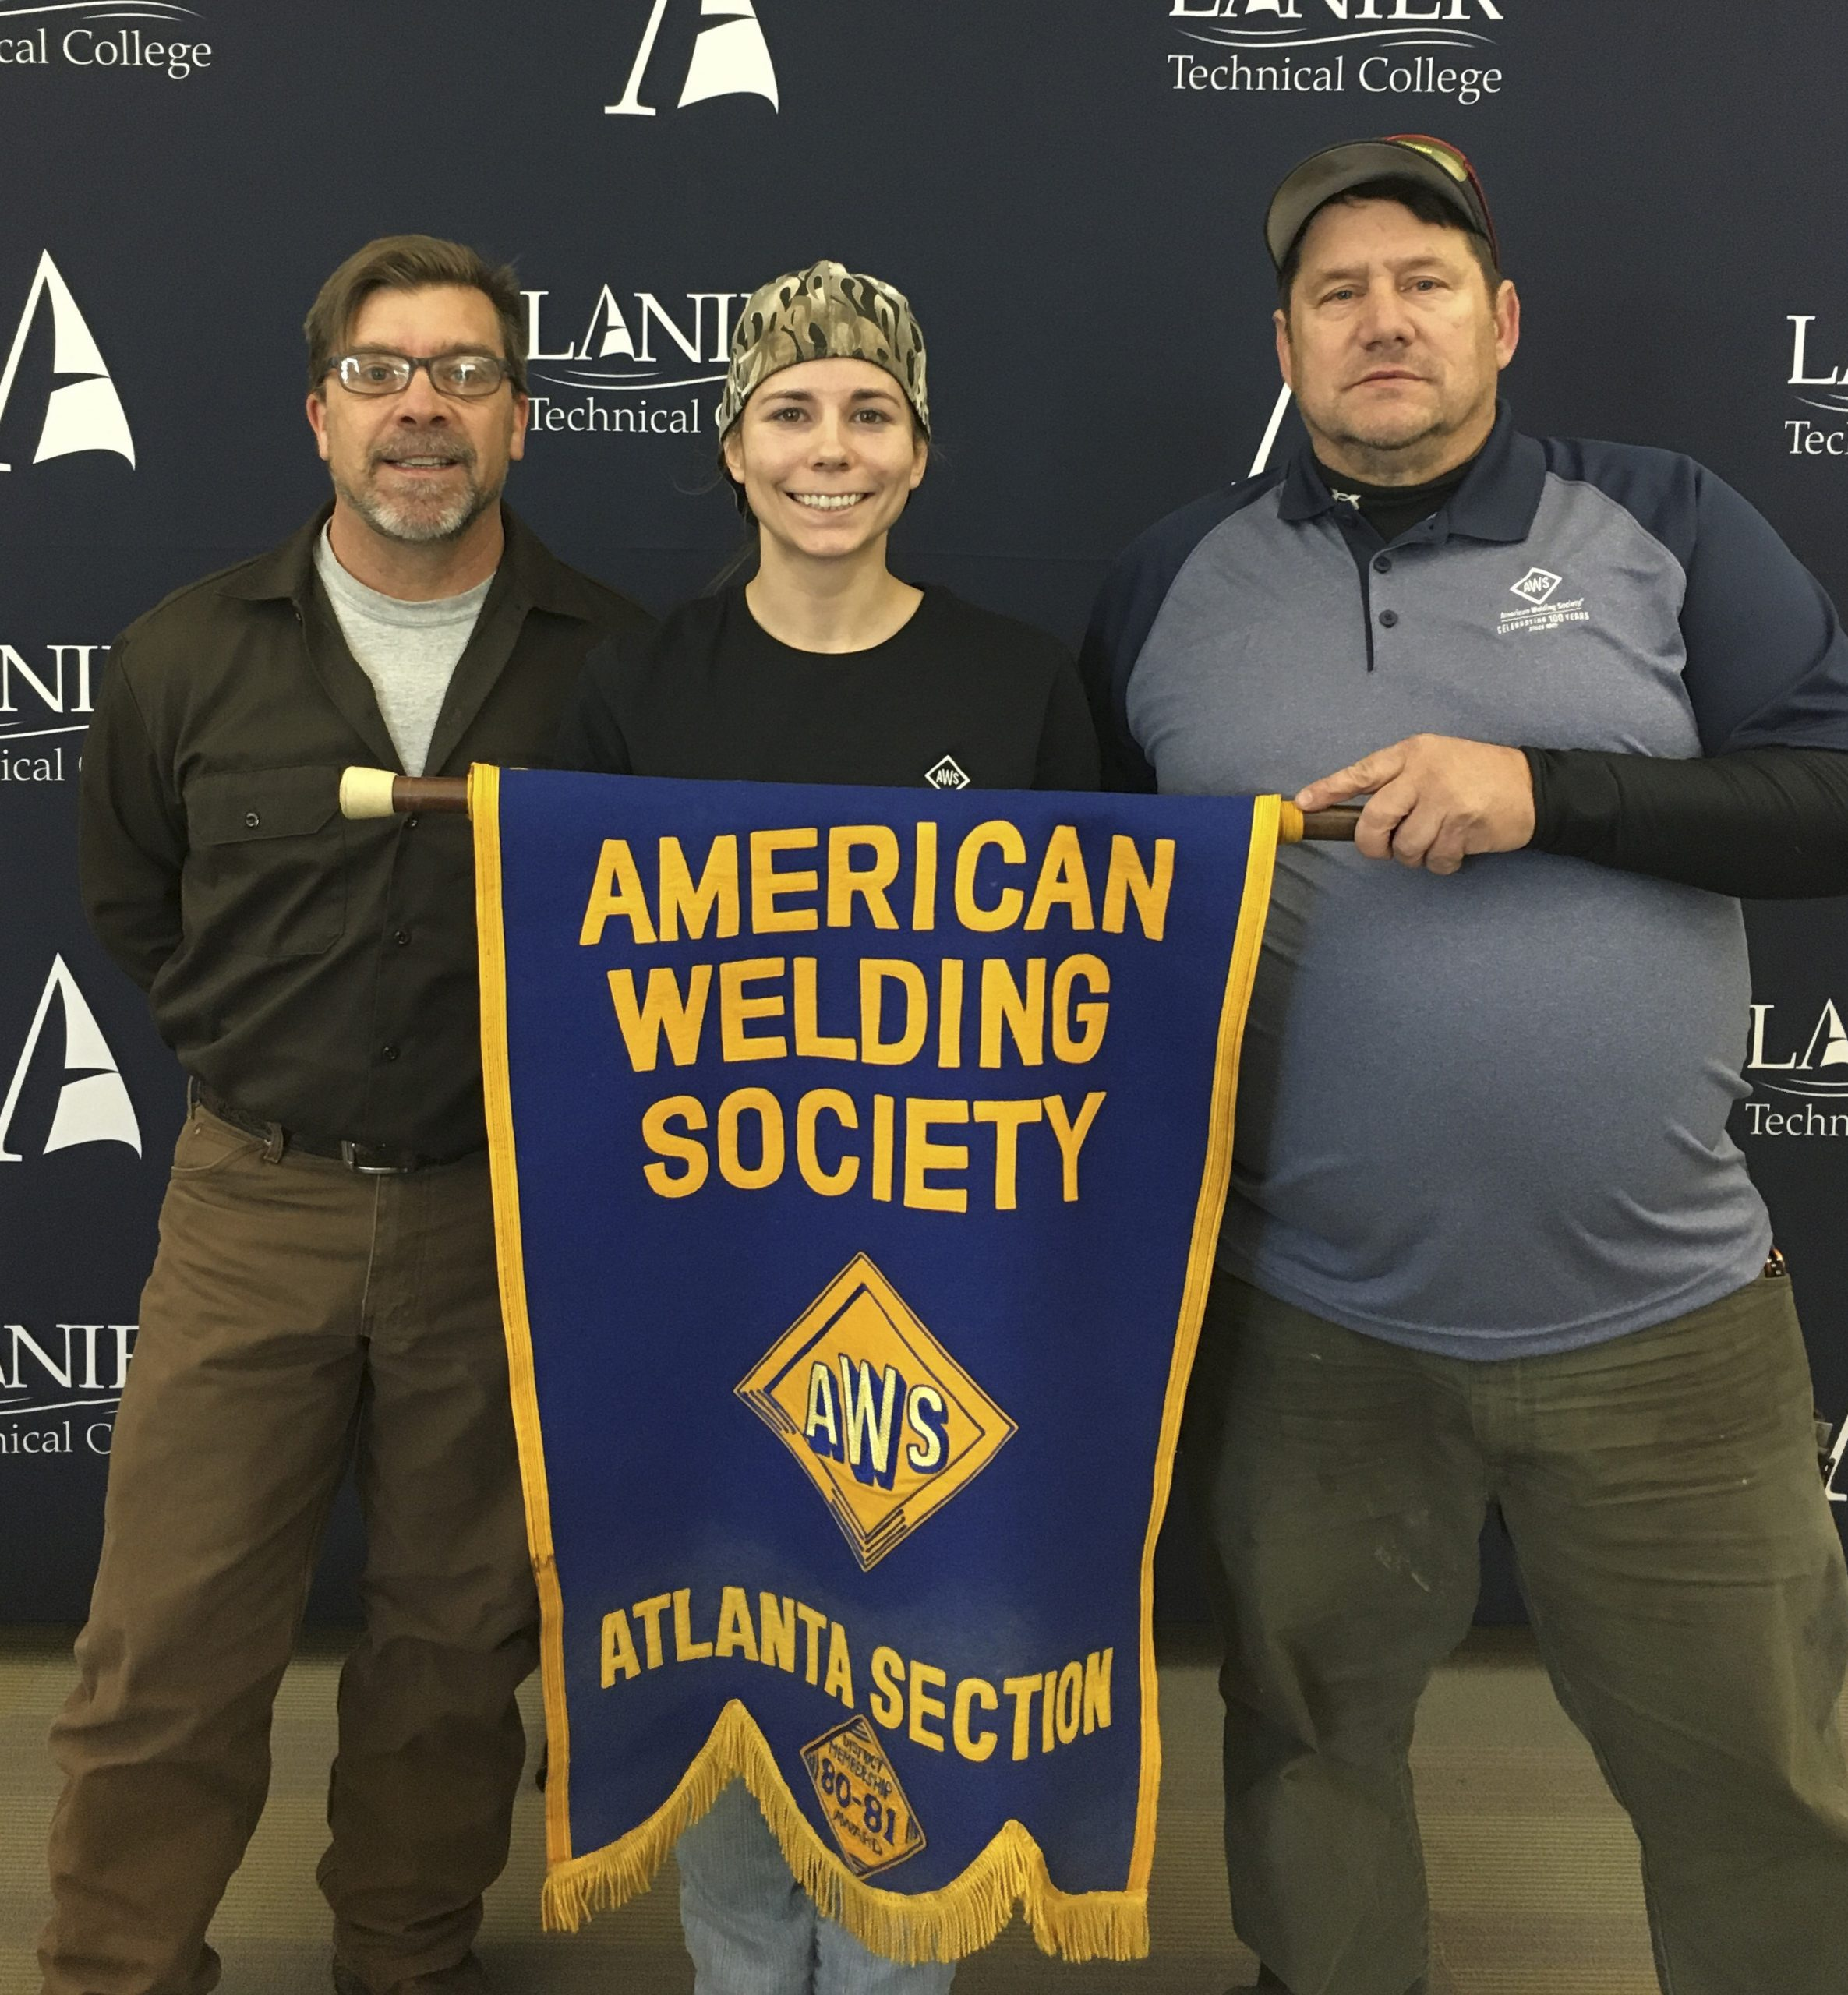 Lanier Tech Welding And Joining Student Appointed As Executive Member Of American Welding Society Lanier Technical College